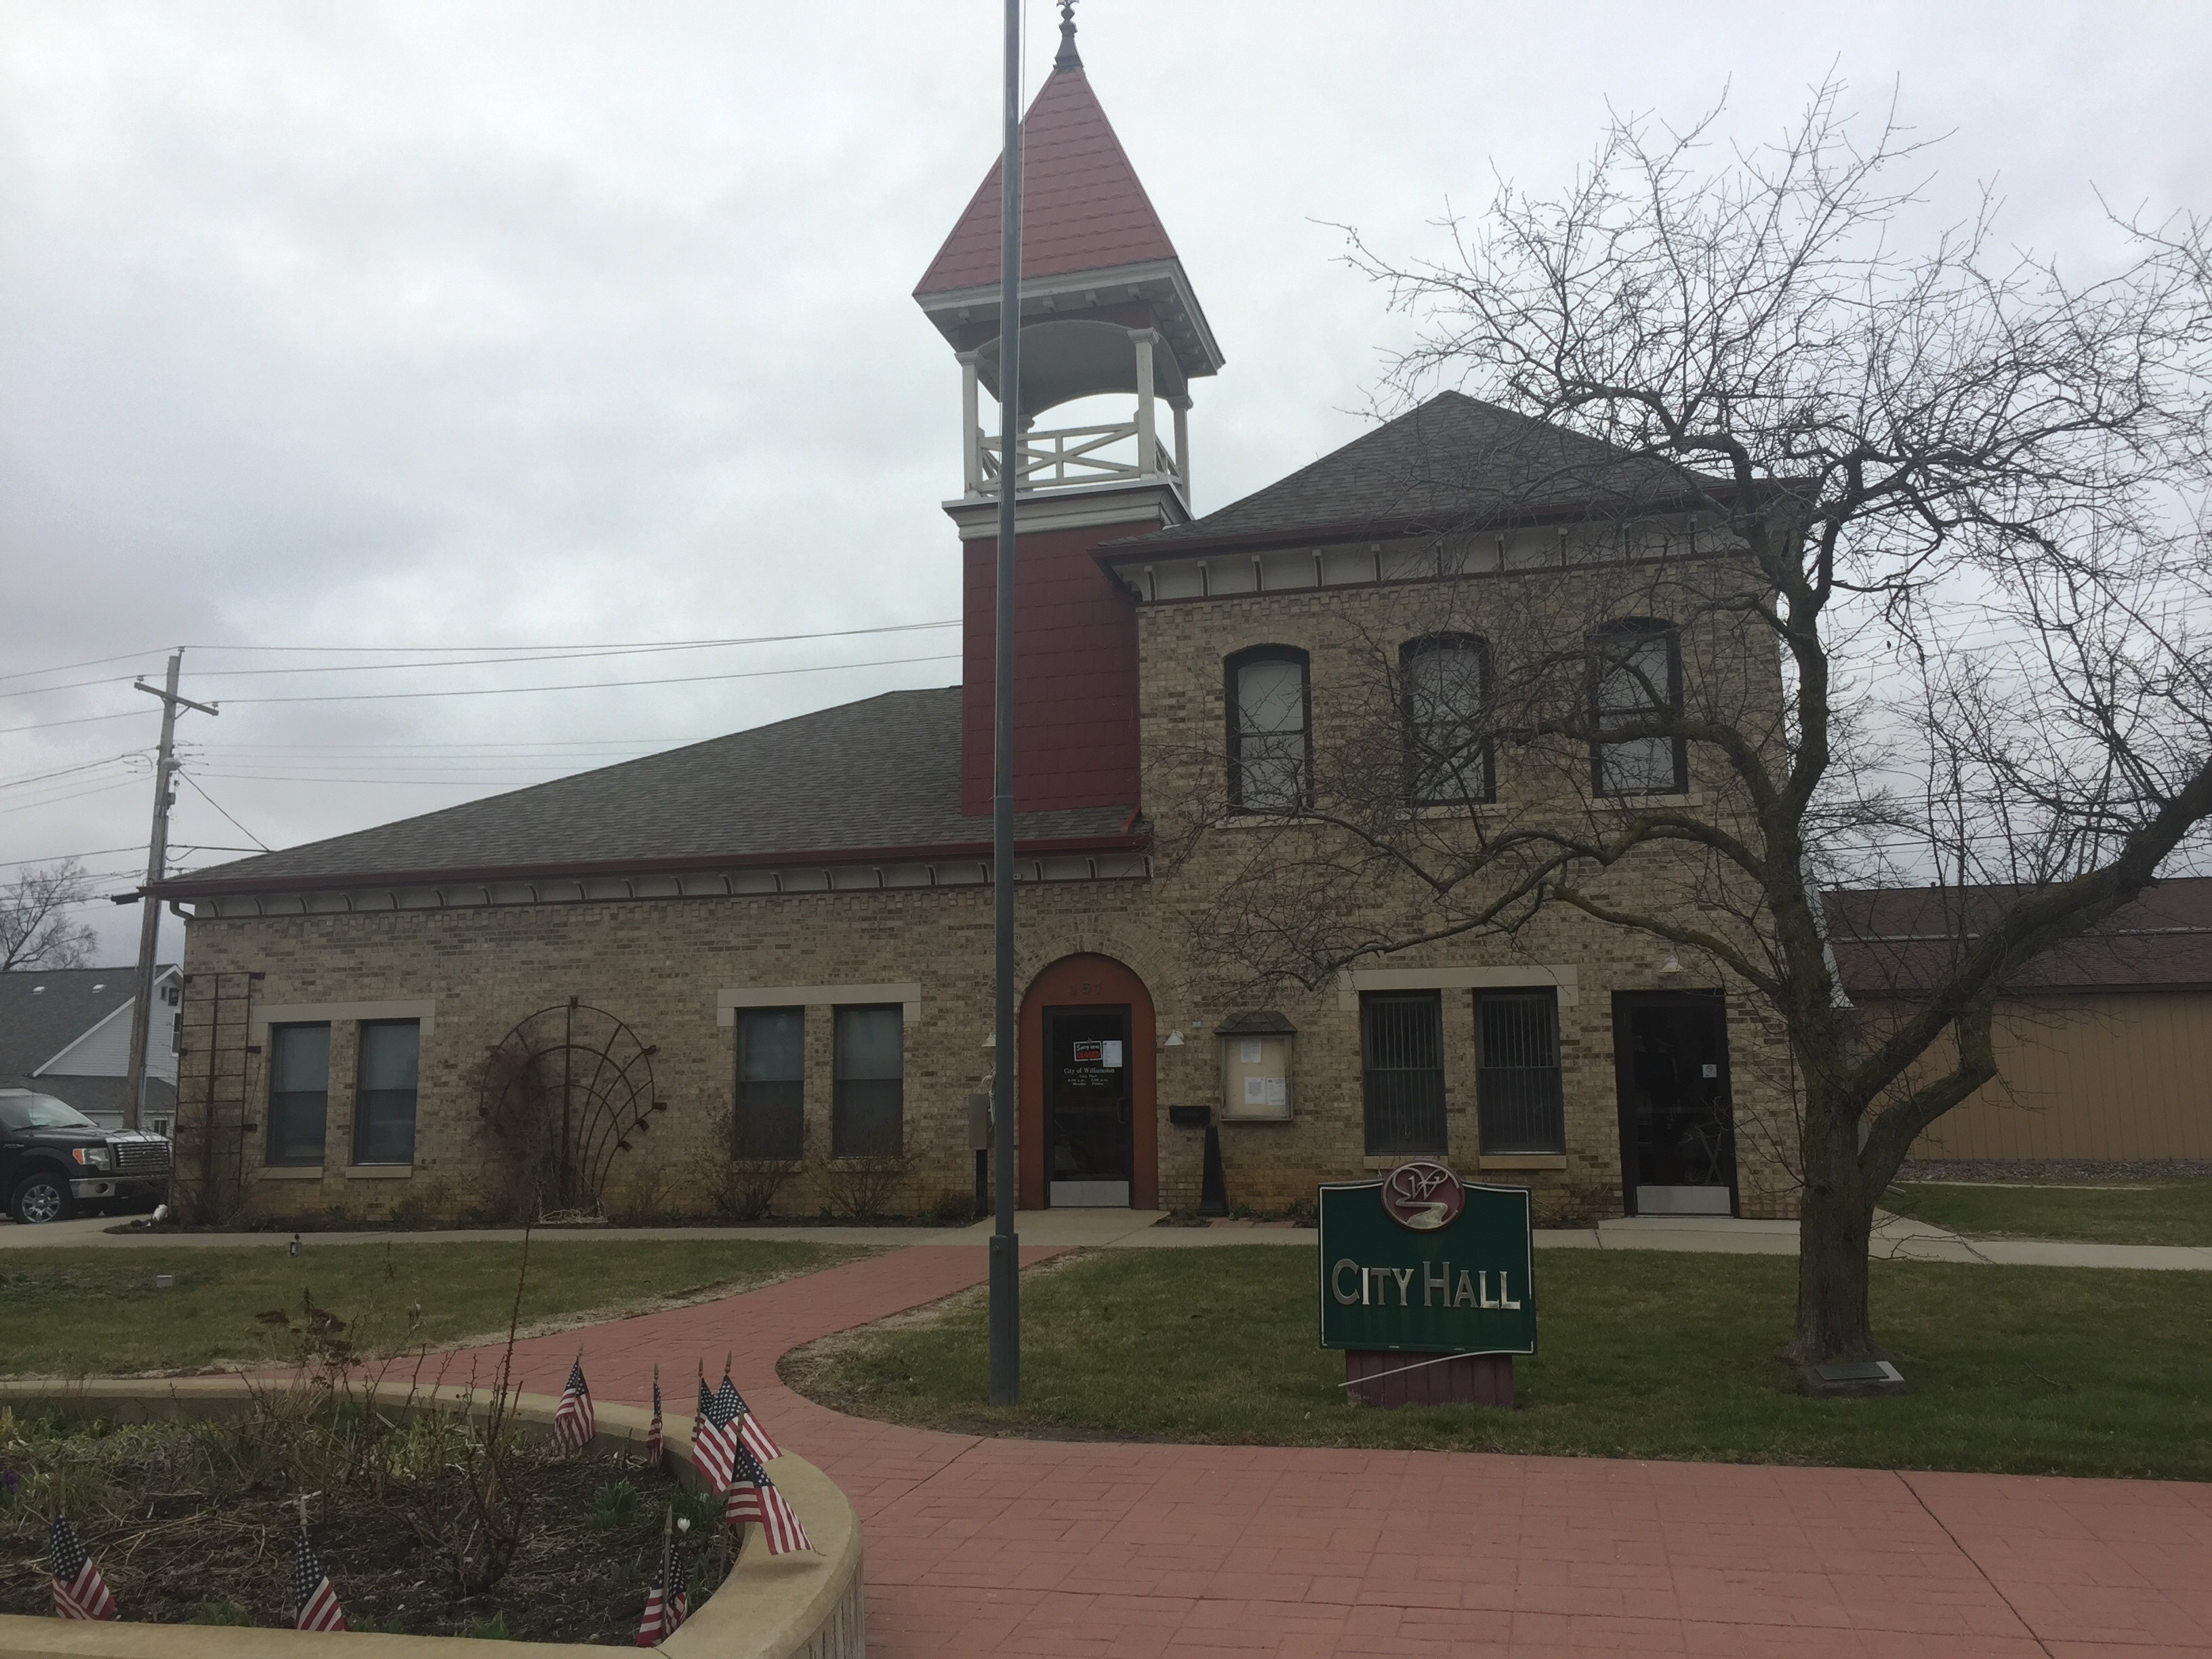 The front of Williamston City Hall, where the city council meetings are held on the second and fourth Monday of the month at 7:00 p.m.